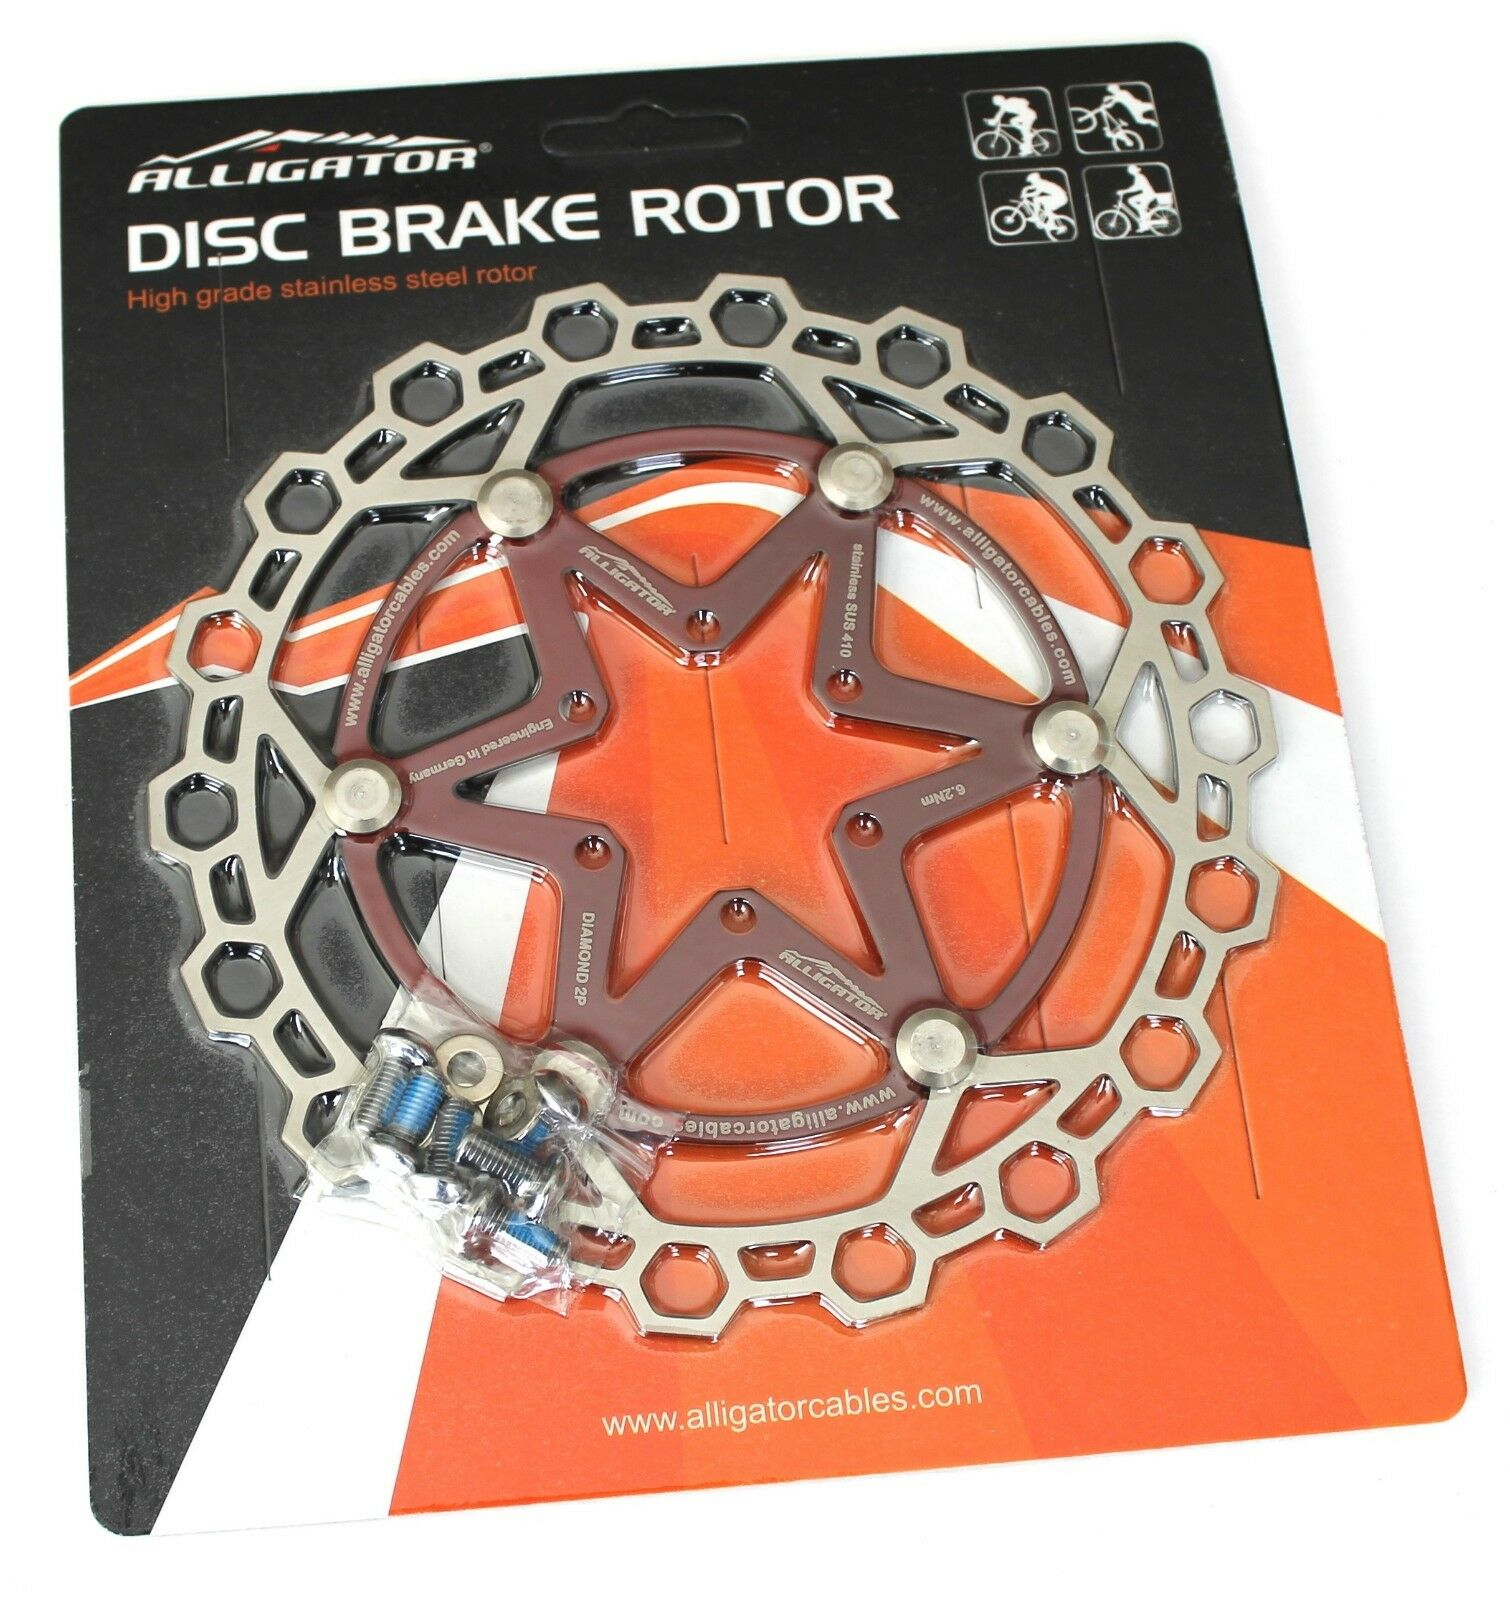 The World/'s lightest Floating Disc brake rotor 72g 160mm Red vs Ashima Hope